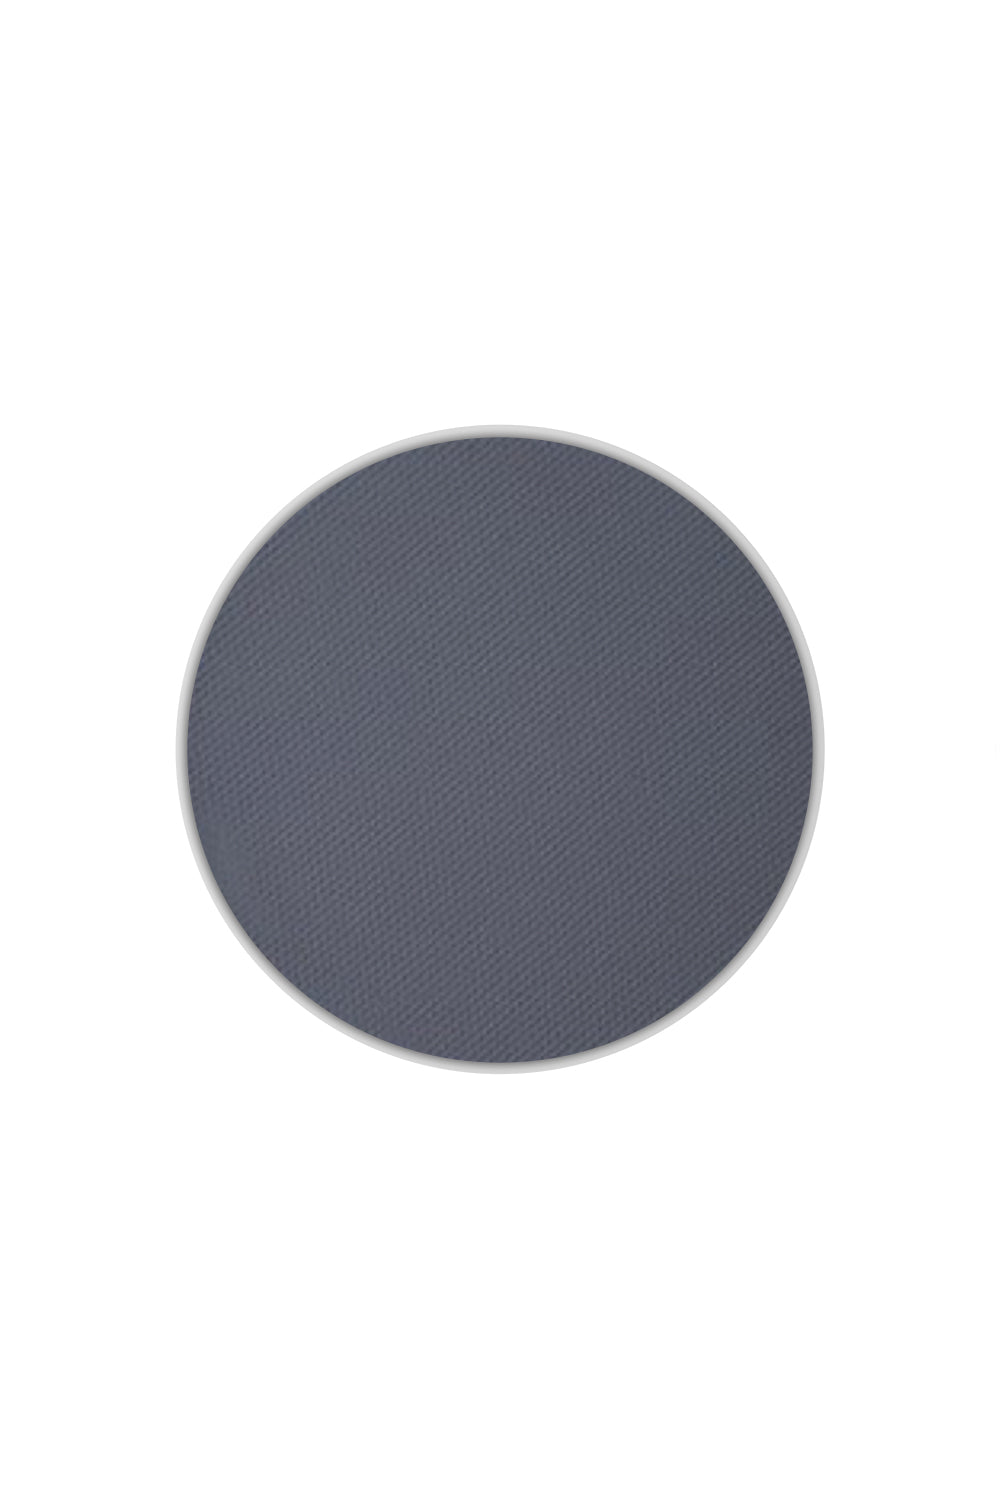 Type 2 Eyeshadow Pan - Maritime Matte